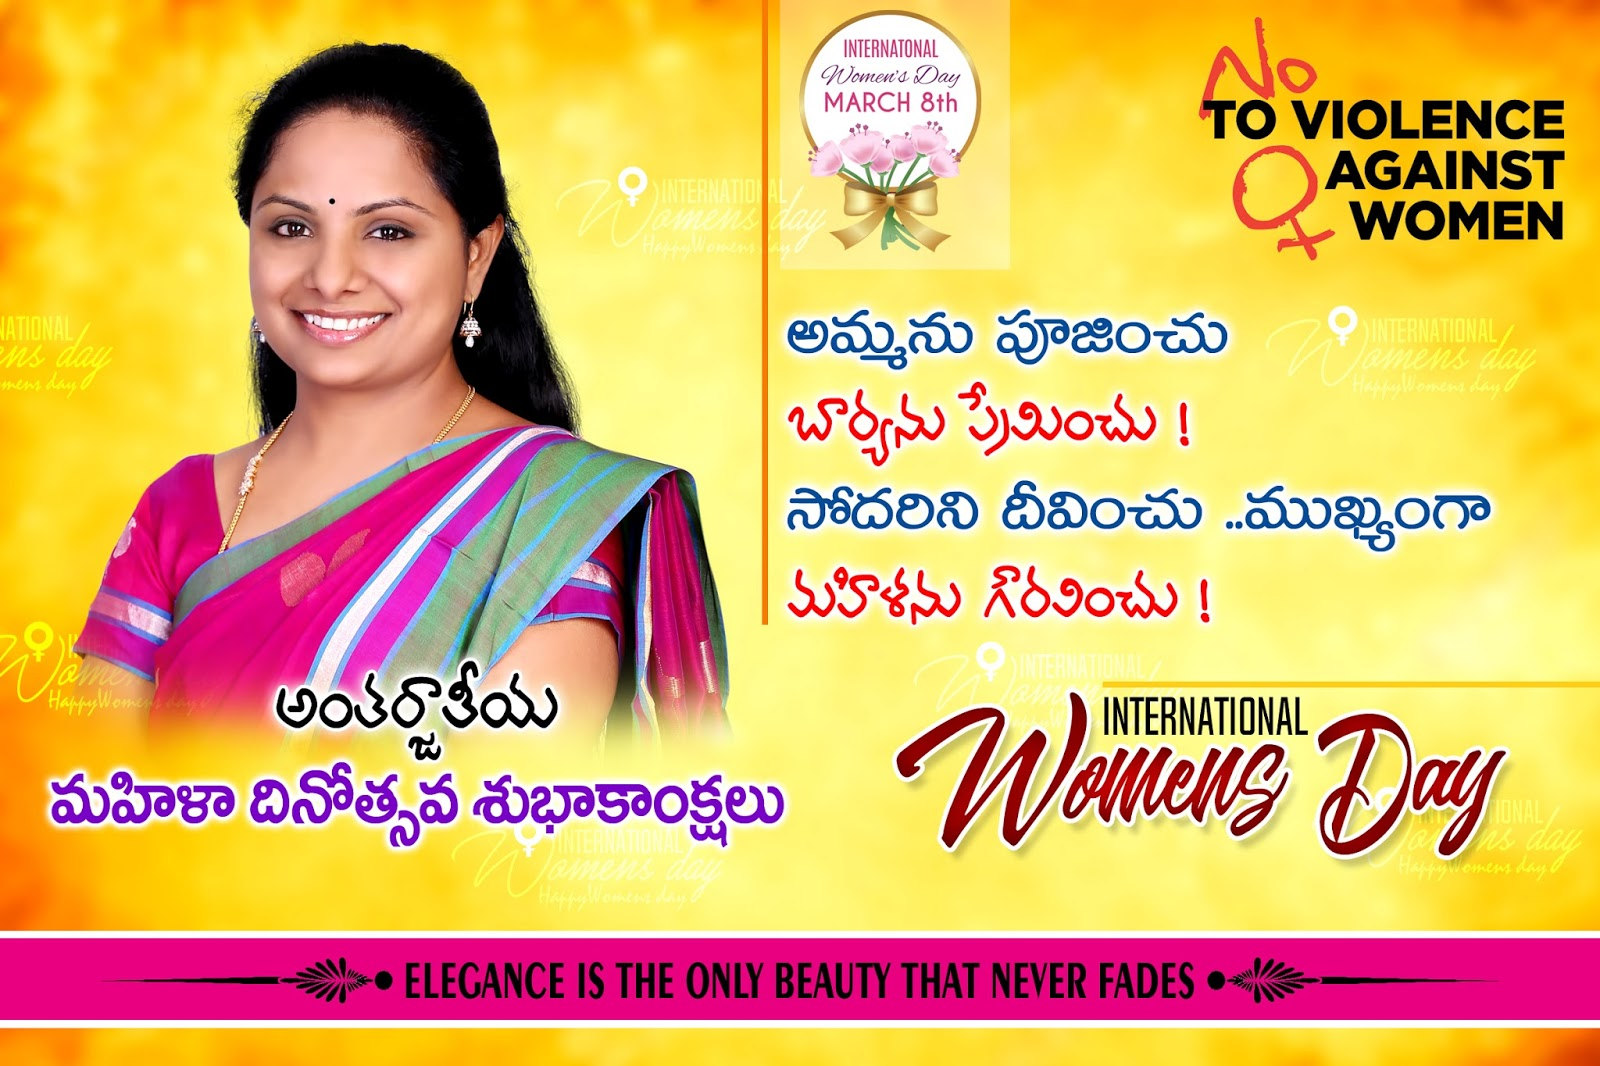 Happy Womens Day Kavitha Wishes And Greetings Hd Poster Naveengfx